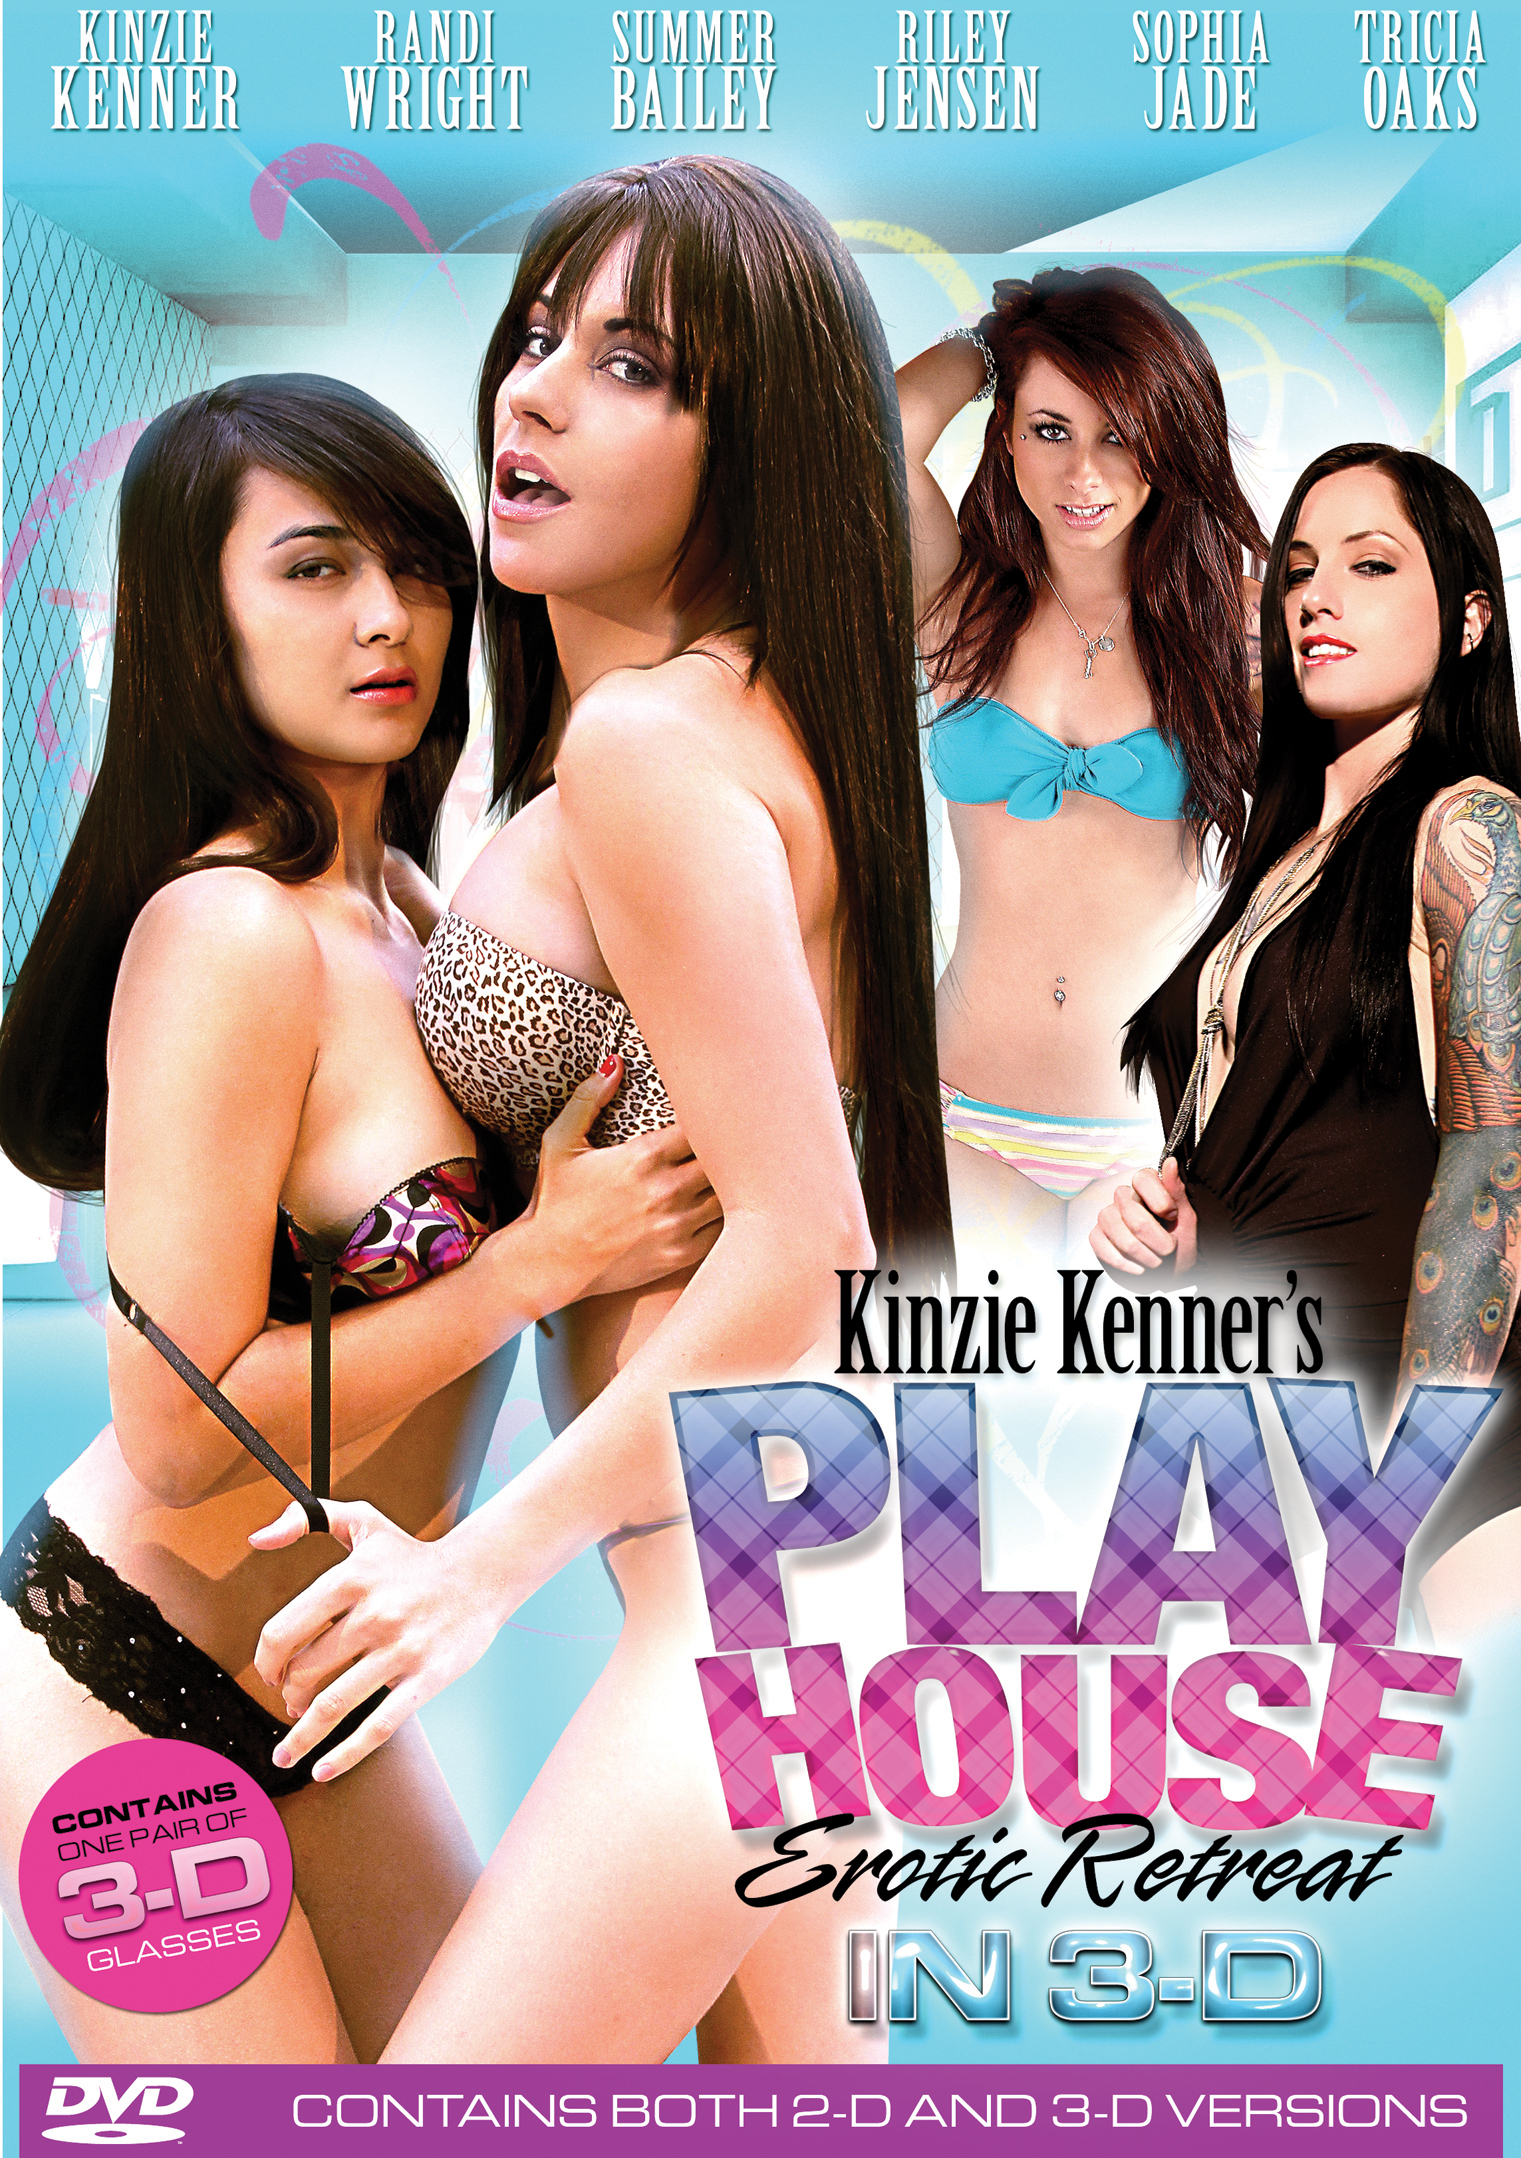 Kinzie Kenner's Pleasure Playhouse: Erotic Retreat